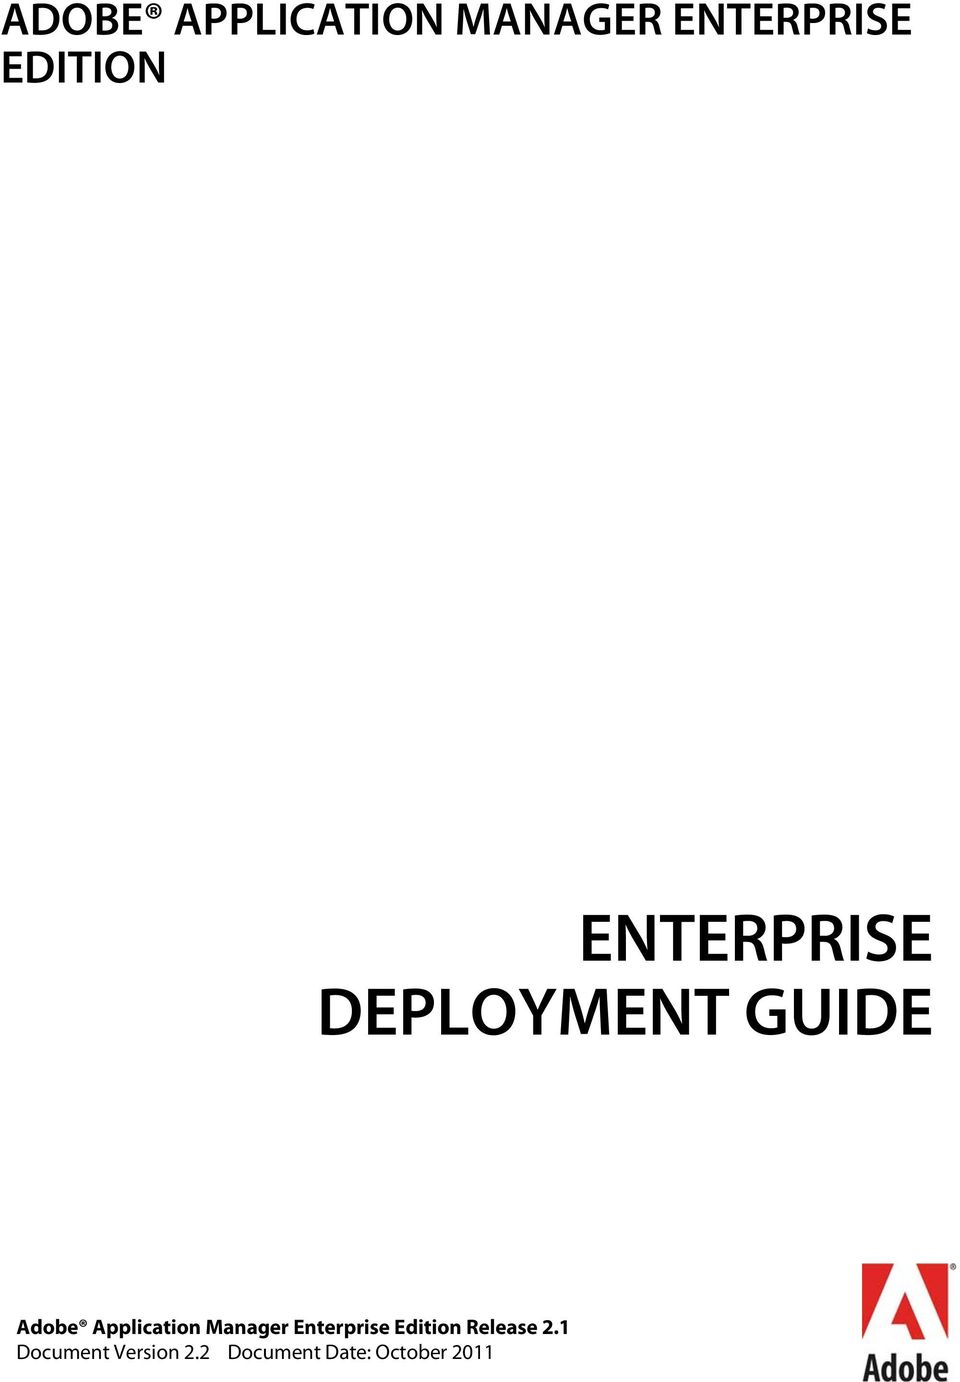 ADOBE APPLICATION MANAGER ENTERPRISE EDITION ENTERPRISE DEPLOYMENT